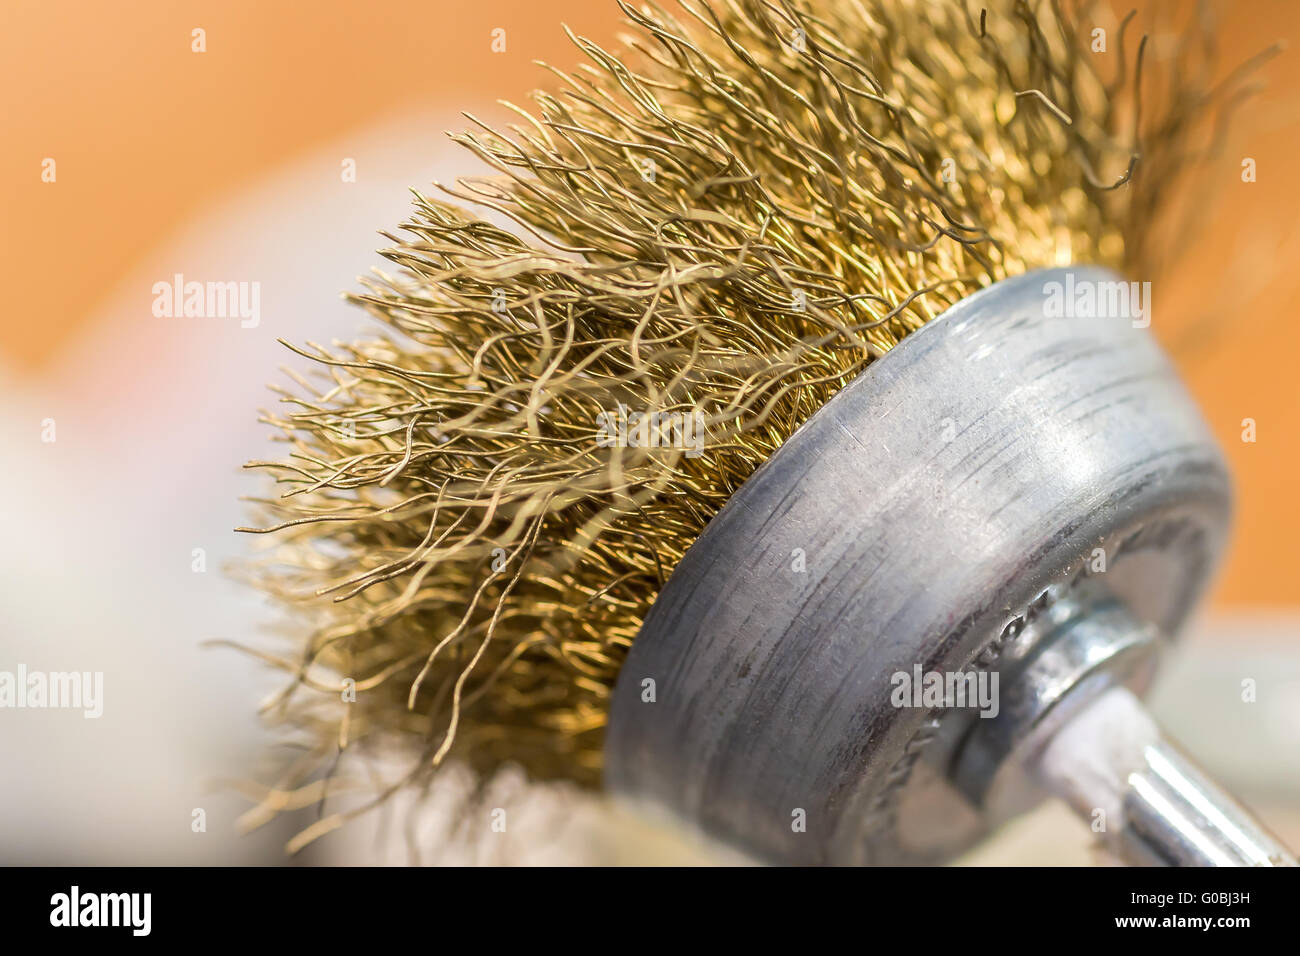 Close up of a grinding attachment of a drill - Stock Image